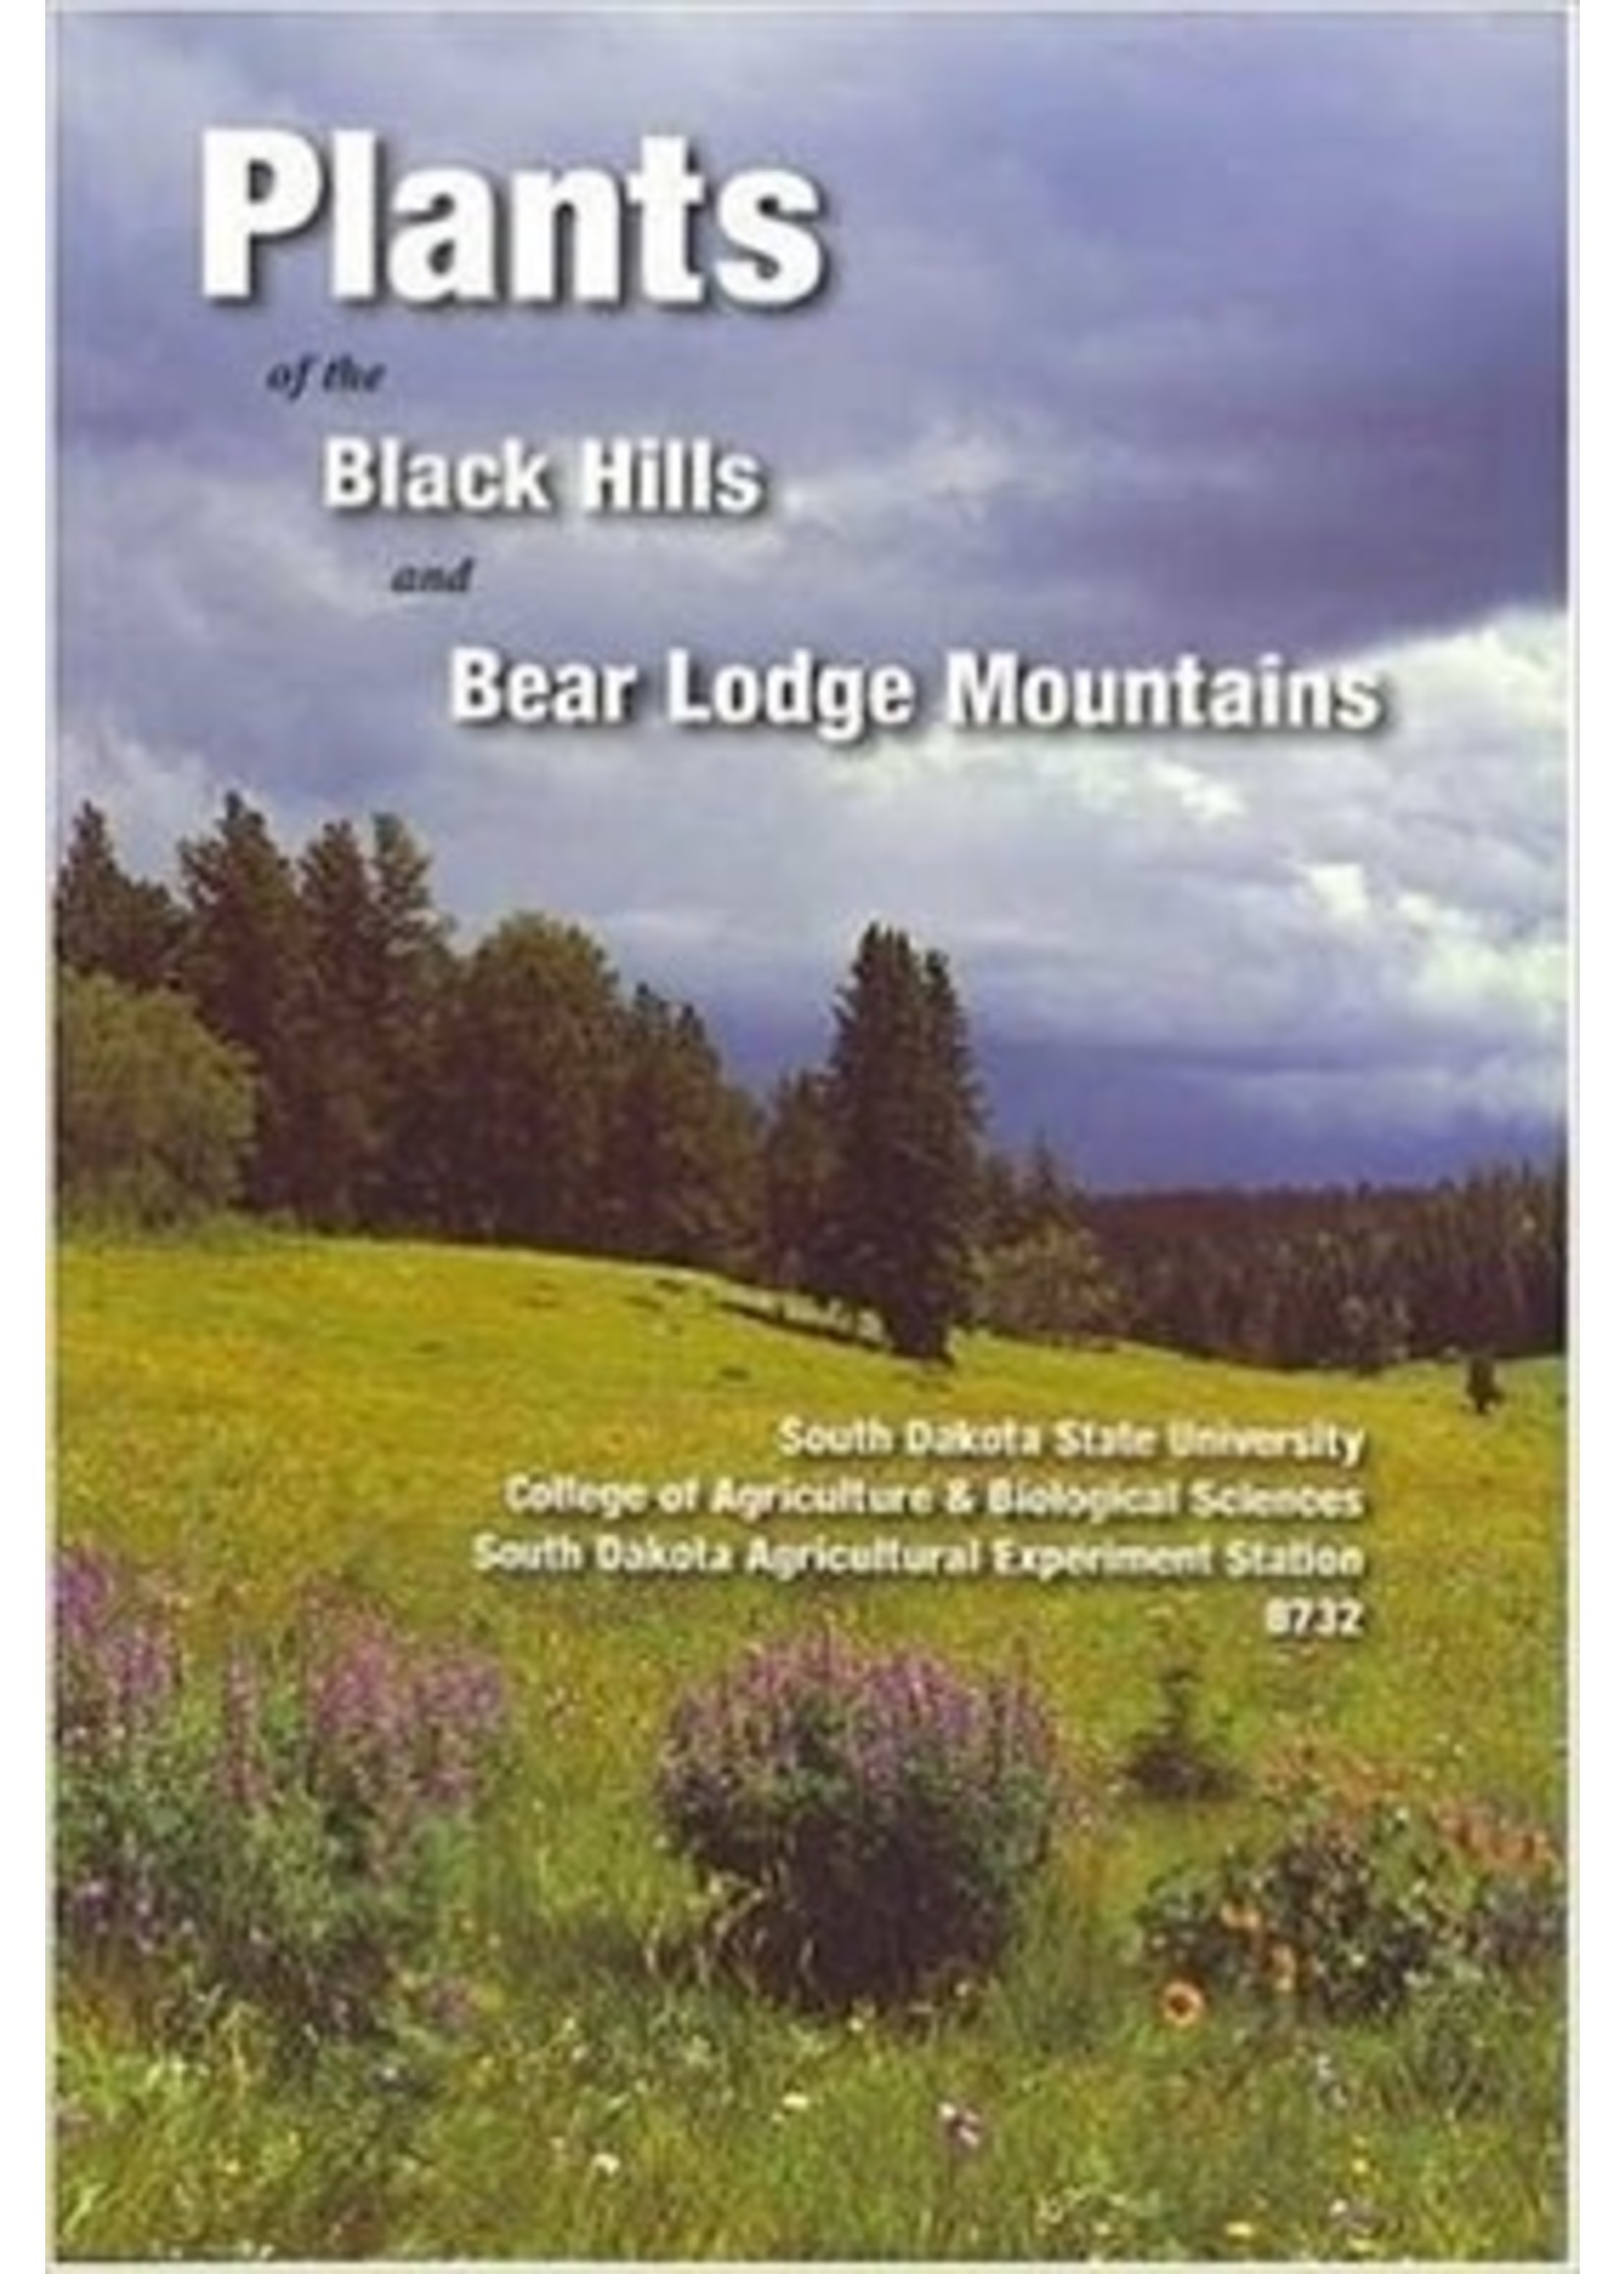 Plants of the Black Hills & Bear Lodge Mountains